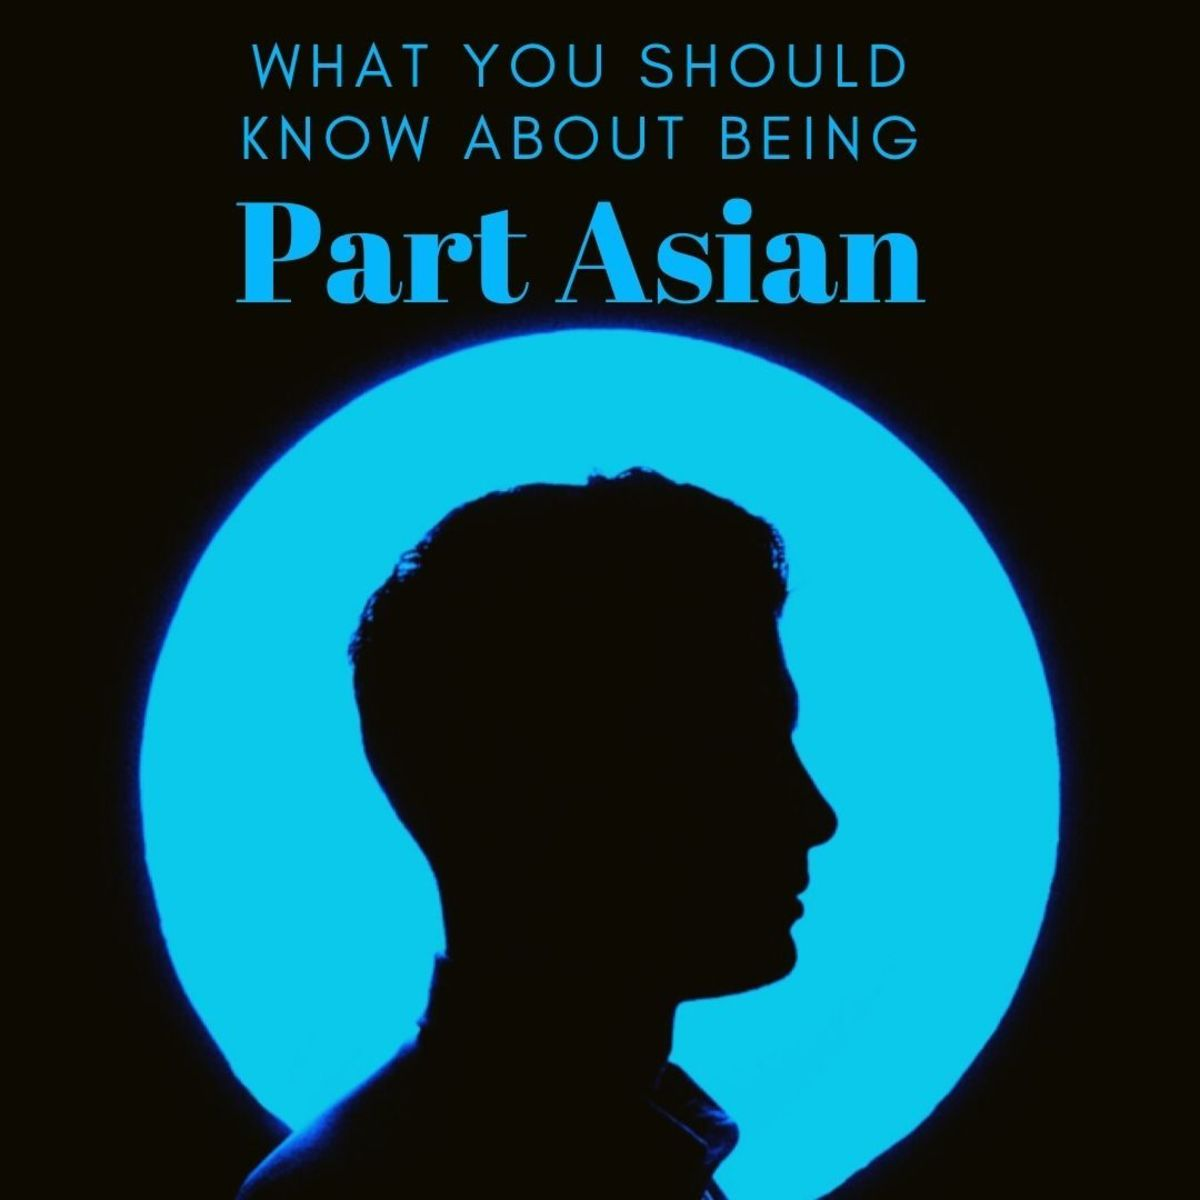 Things to Know About Being Part Asian